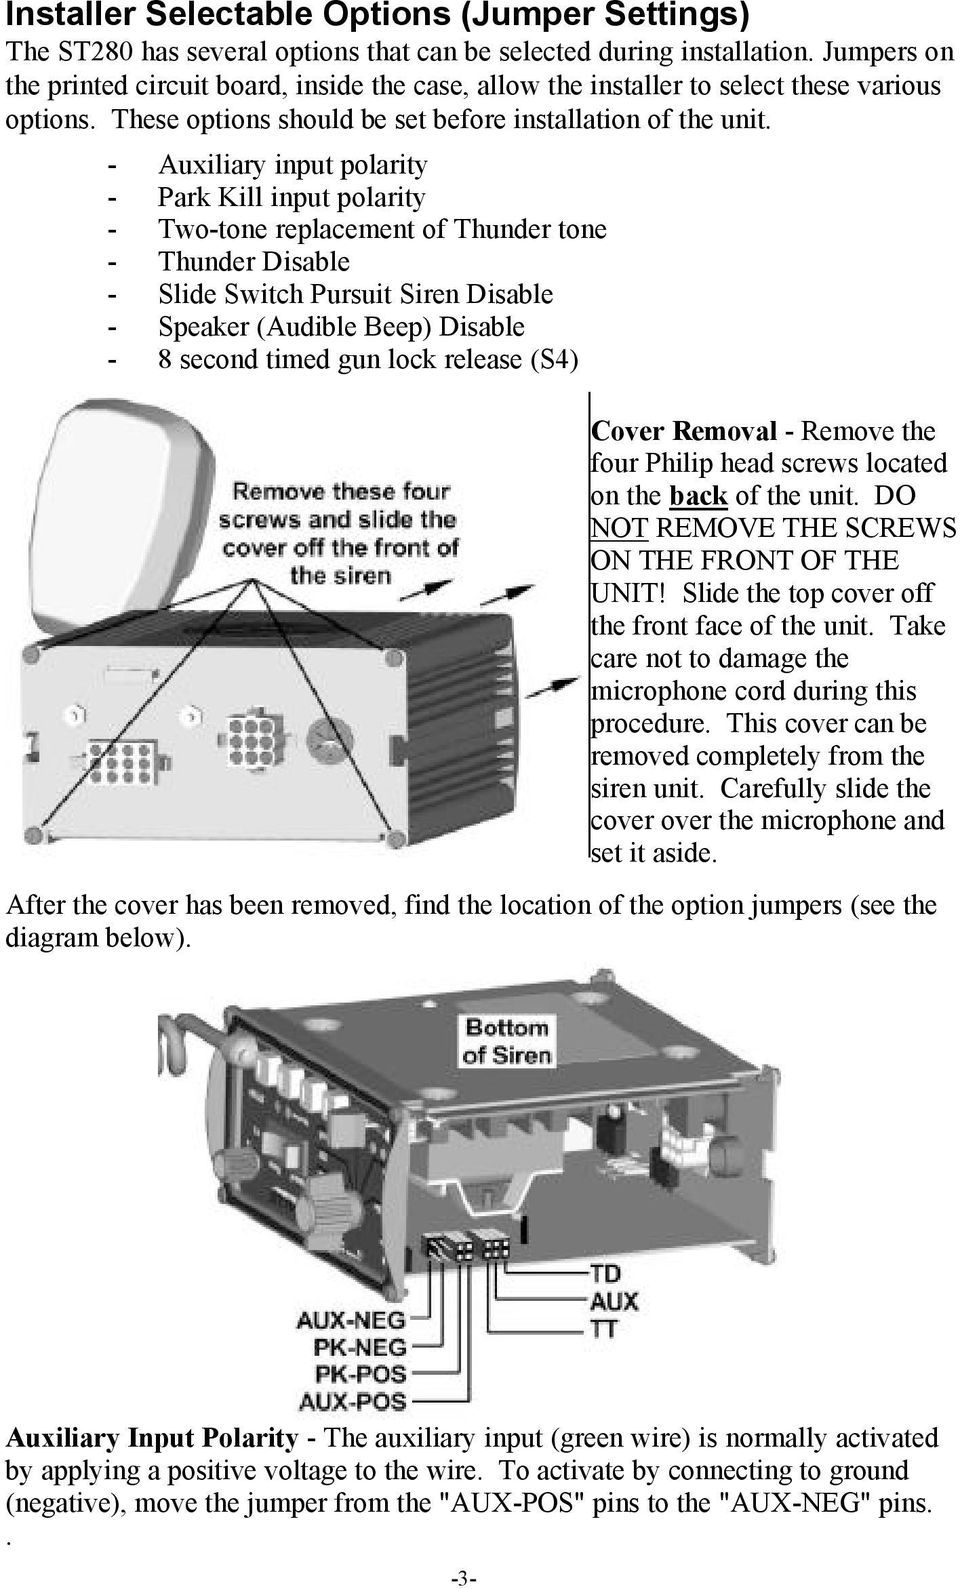 Street Thunder St280 Siren Amplifier With Light Controls Installation And Operating Instructions Pdf Free Download